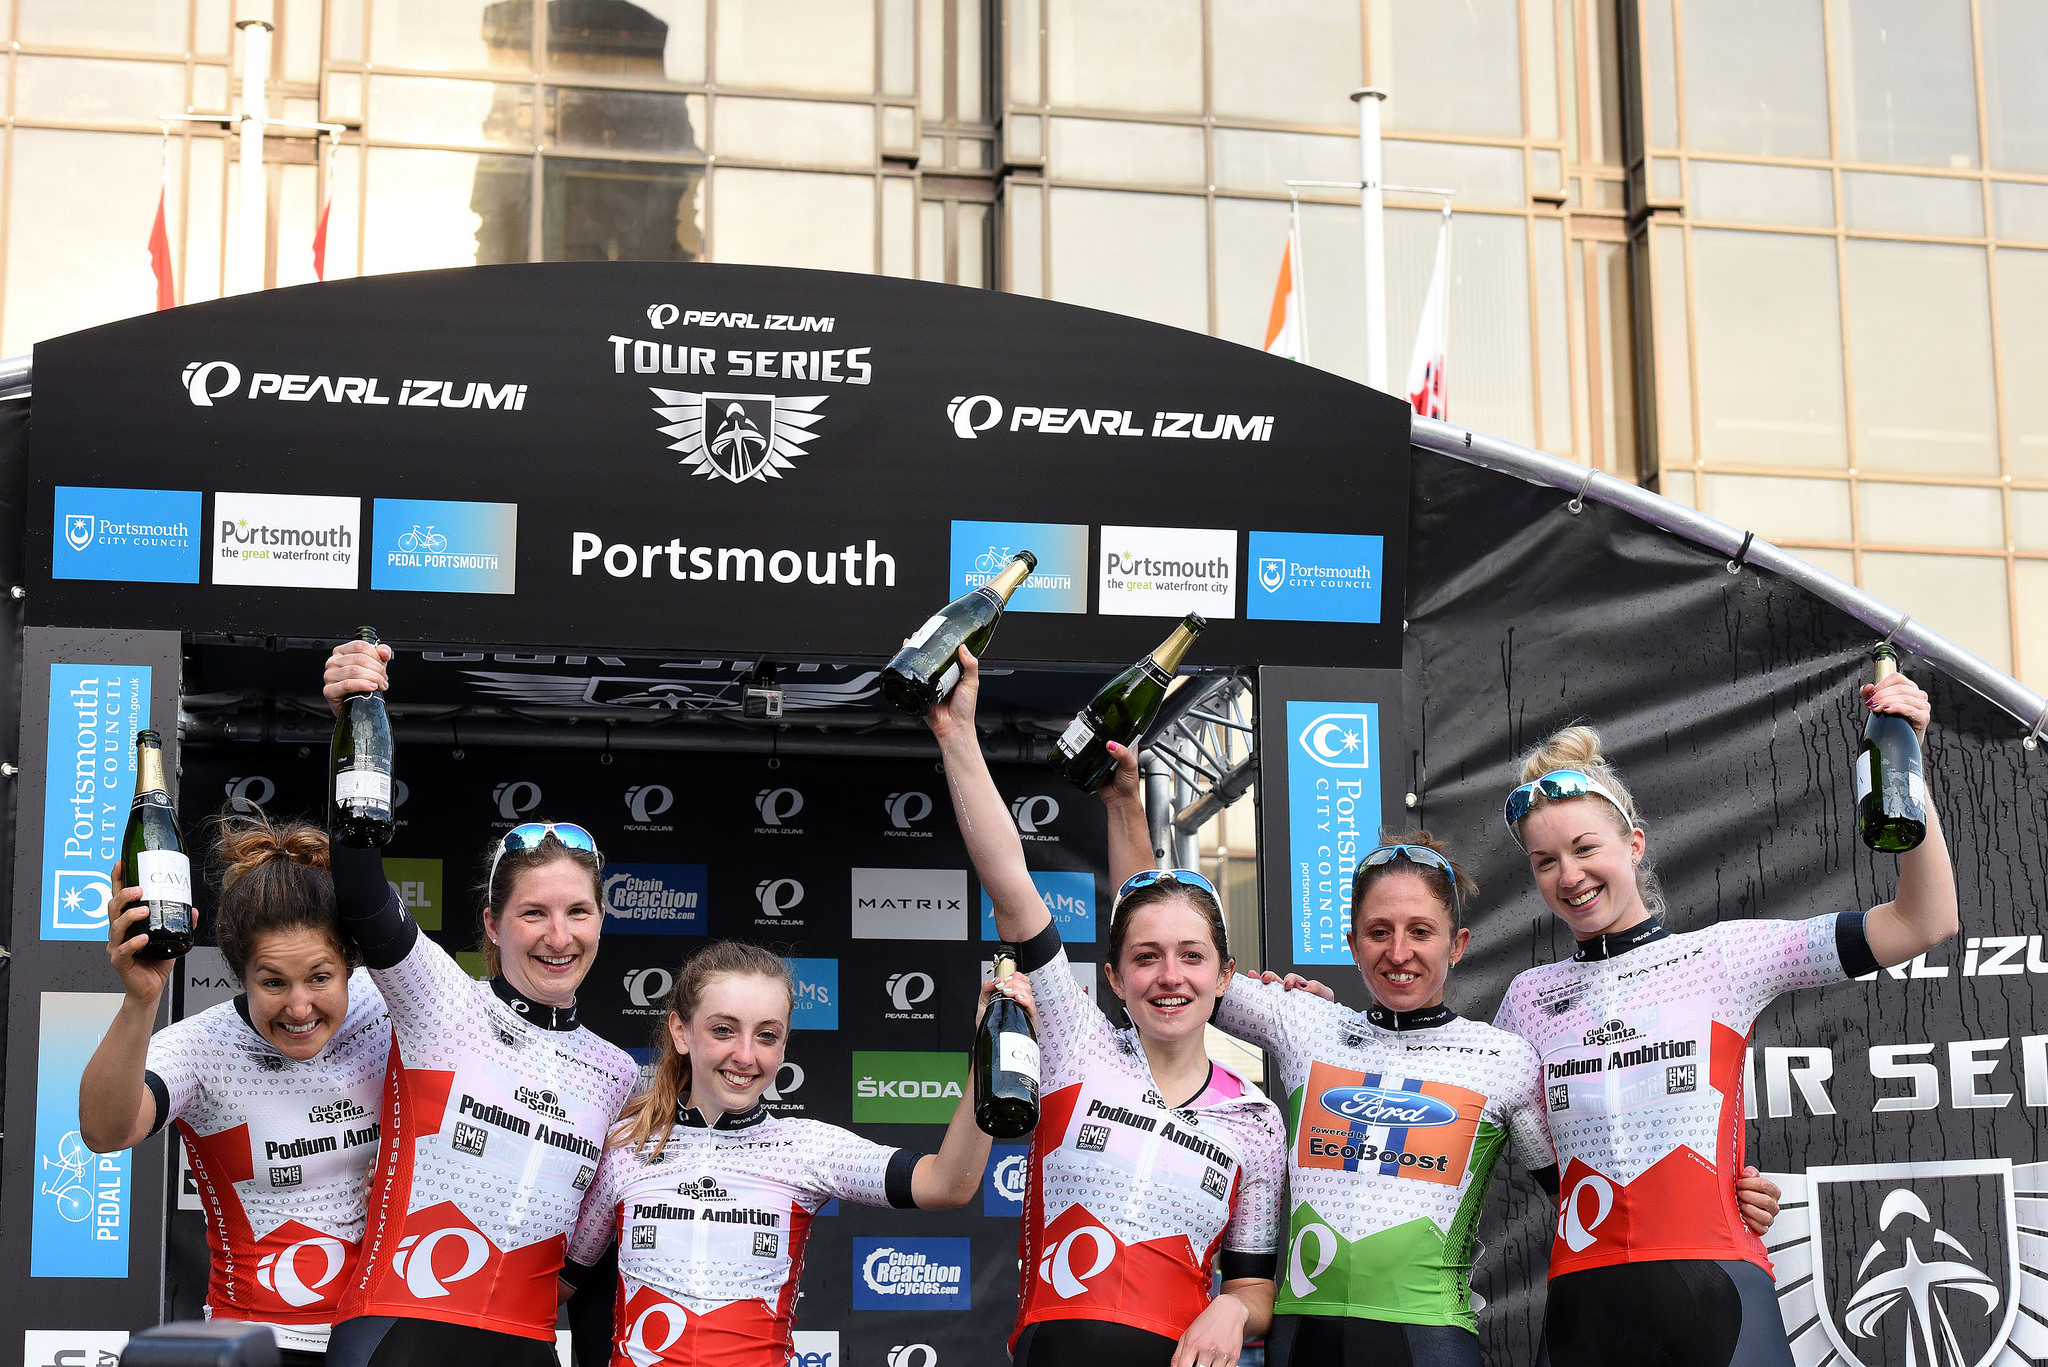 © Tour Series 2016 Podium Ambitions p/b Club La Santa win the series overall classification.